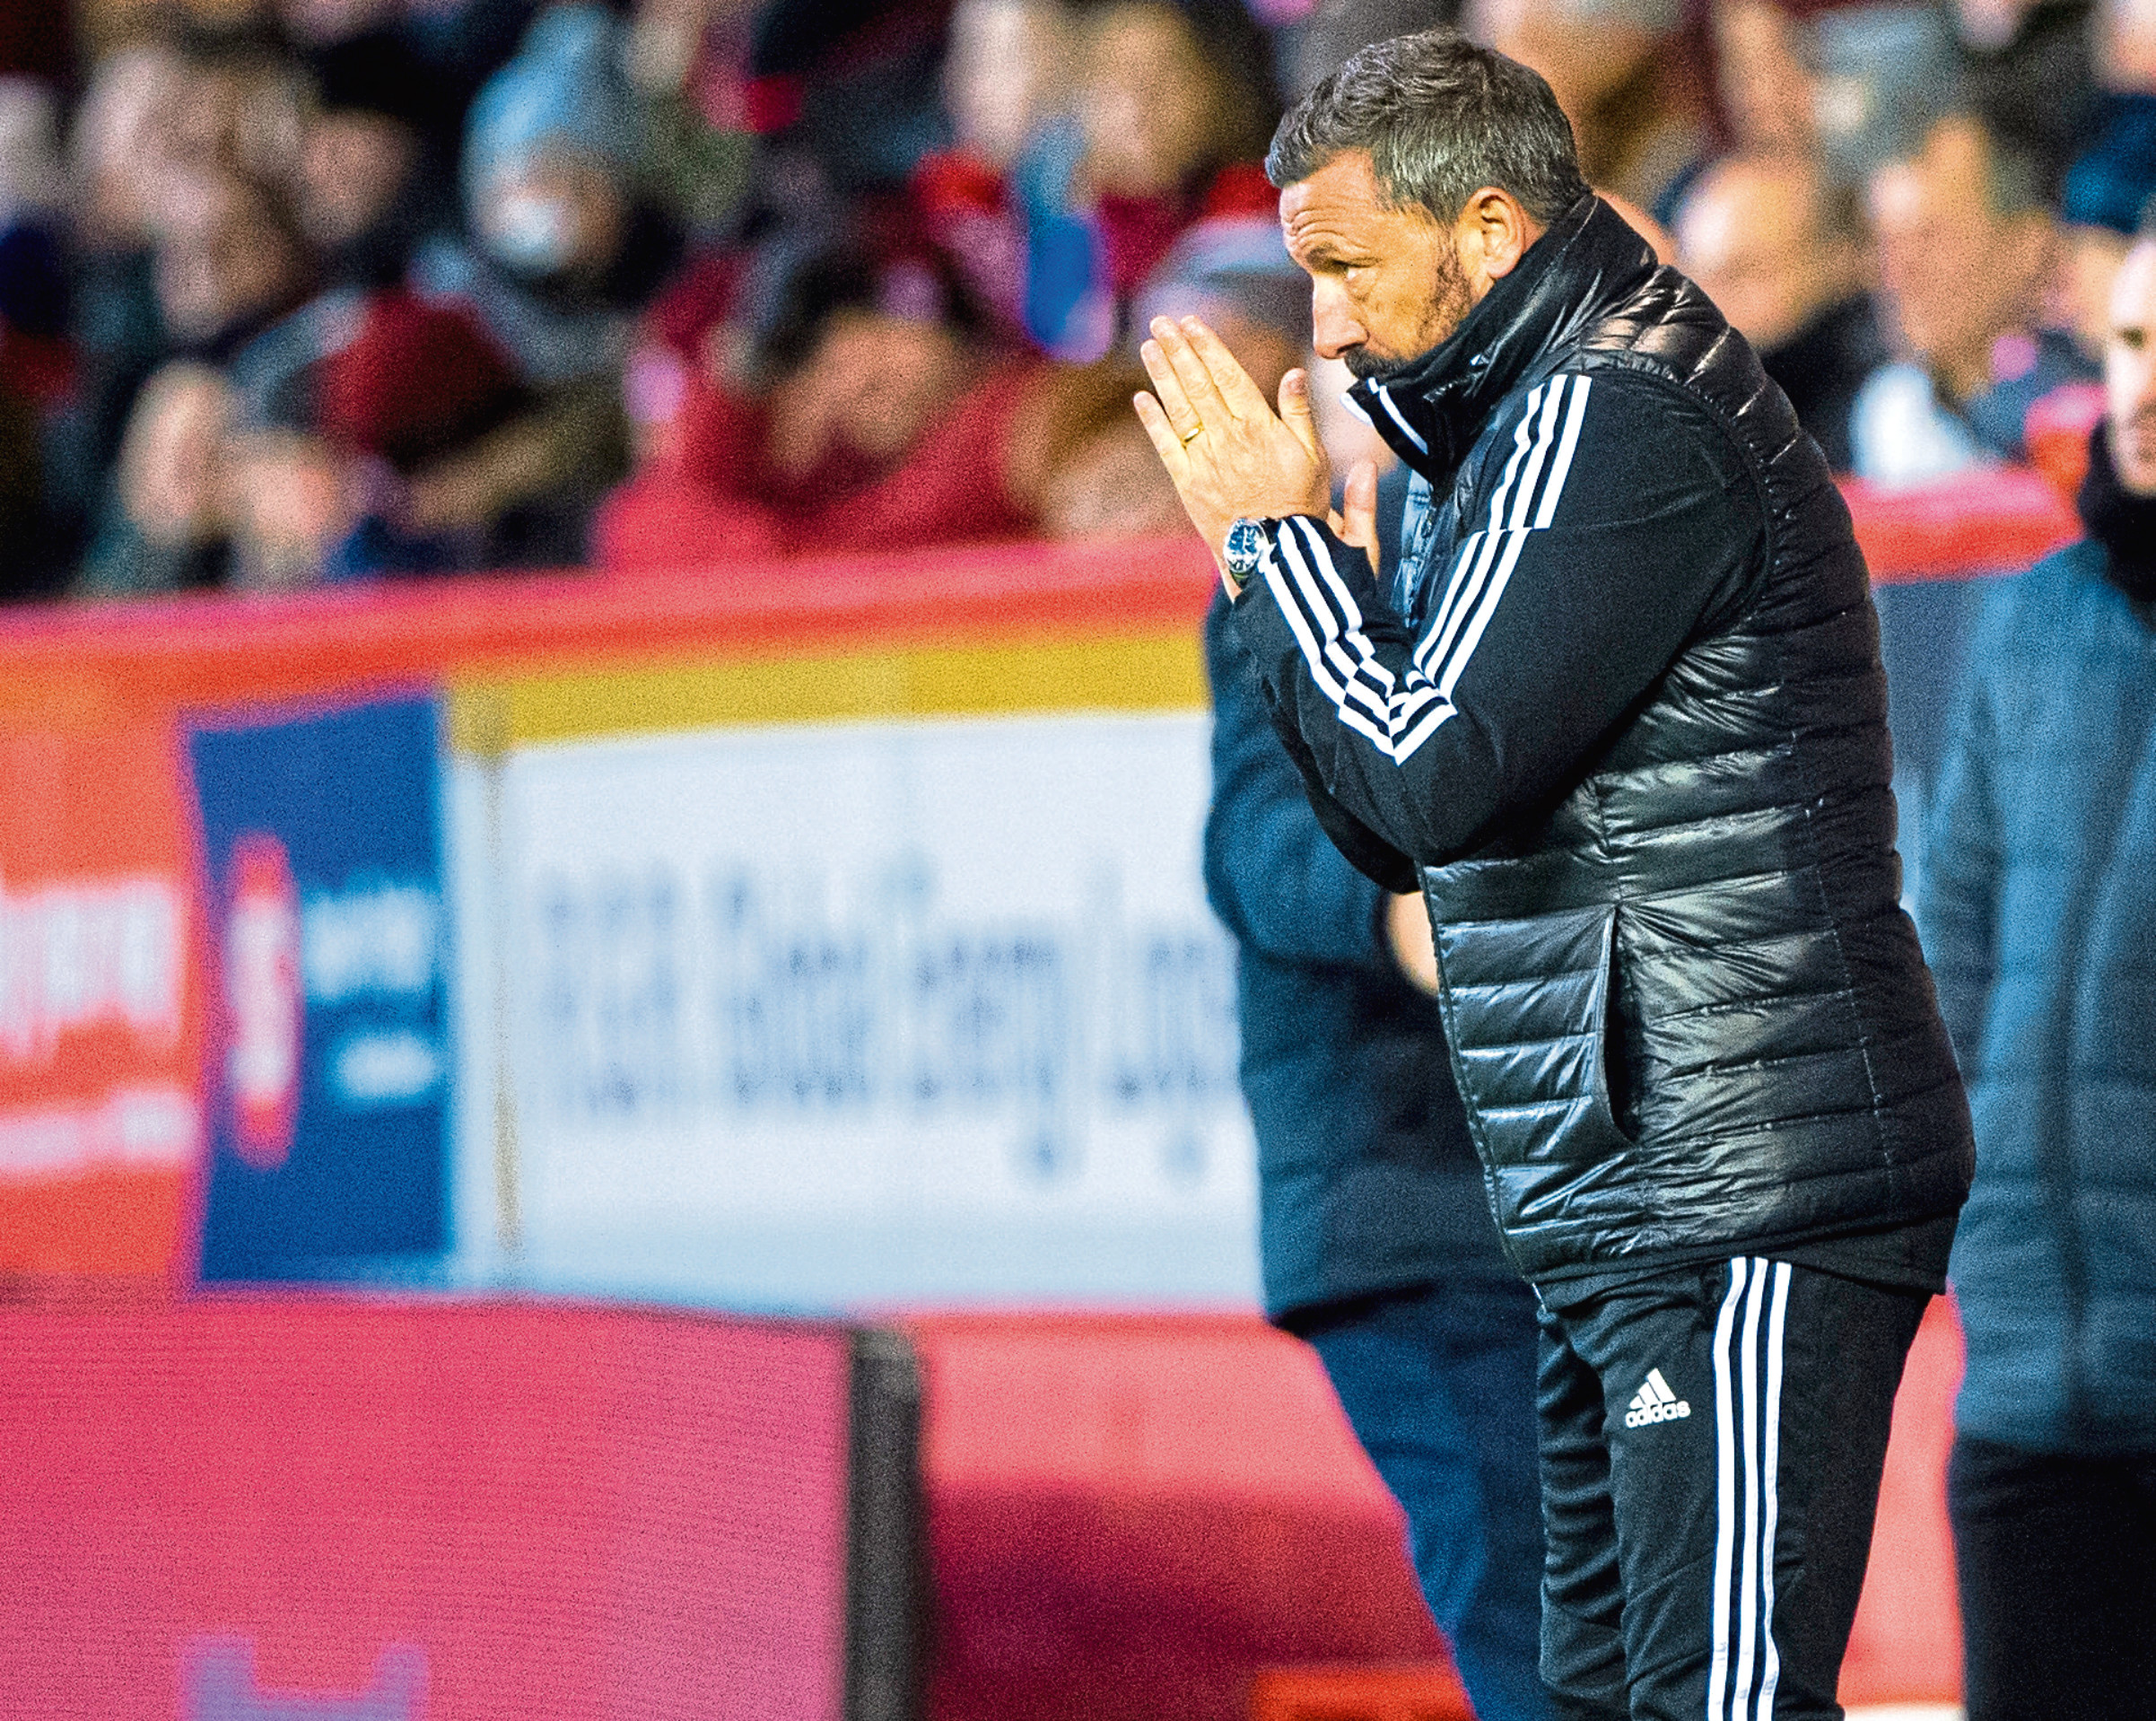 McInnes has called for the Aberdeen fans to rally behind the team.